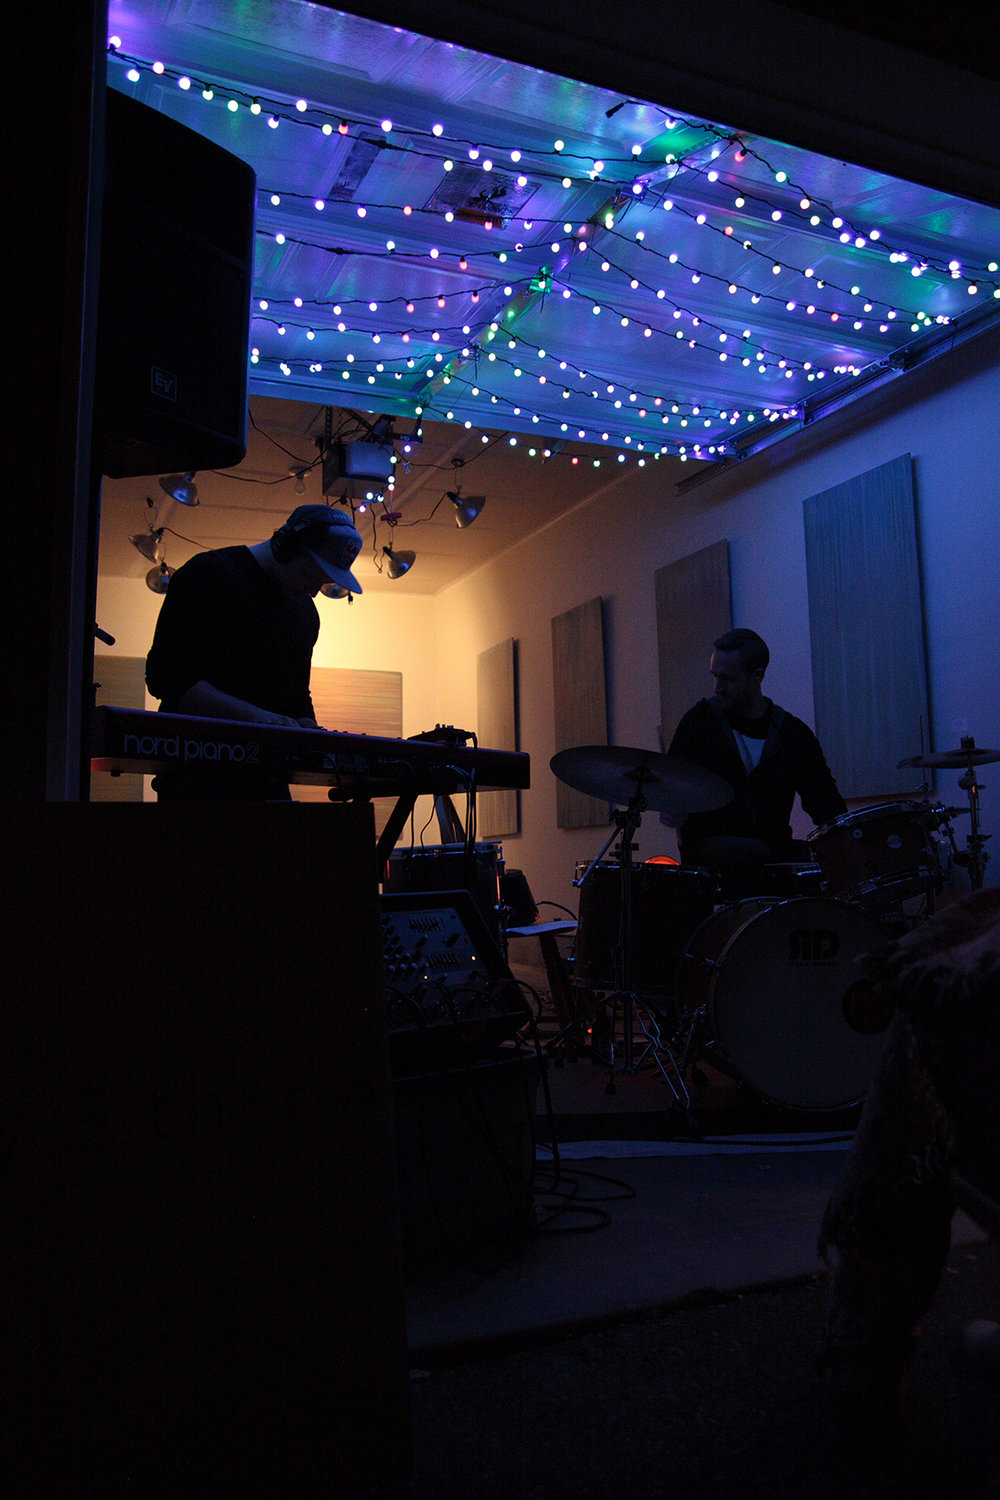 FIRST DATES (lights)_resized.jpg